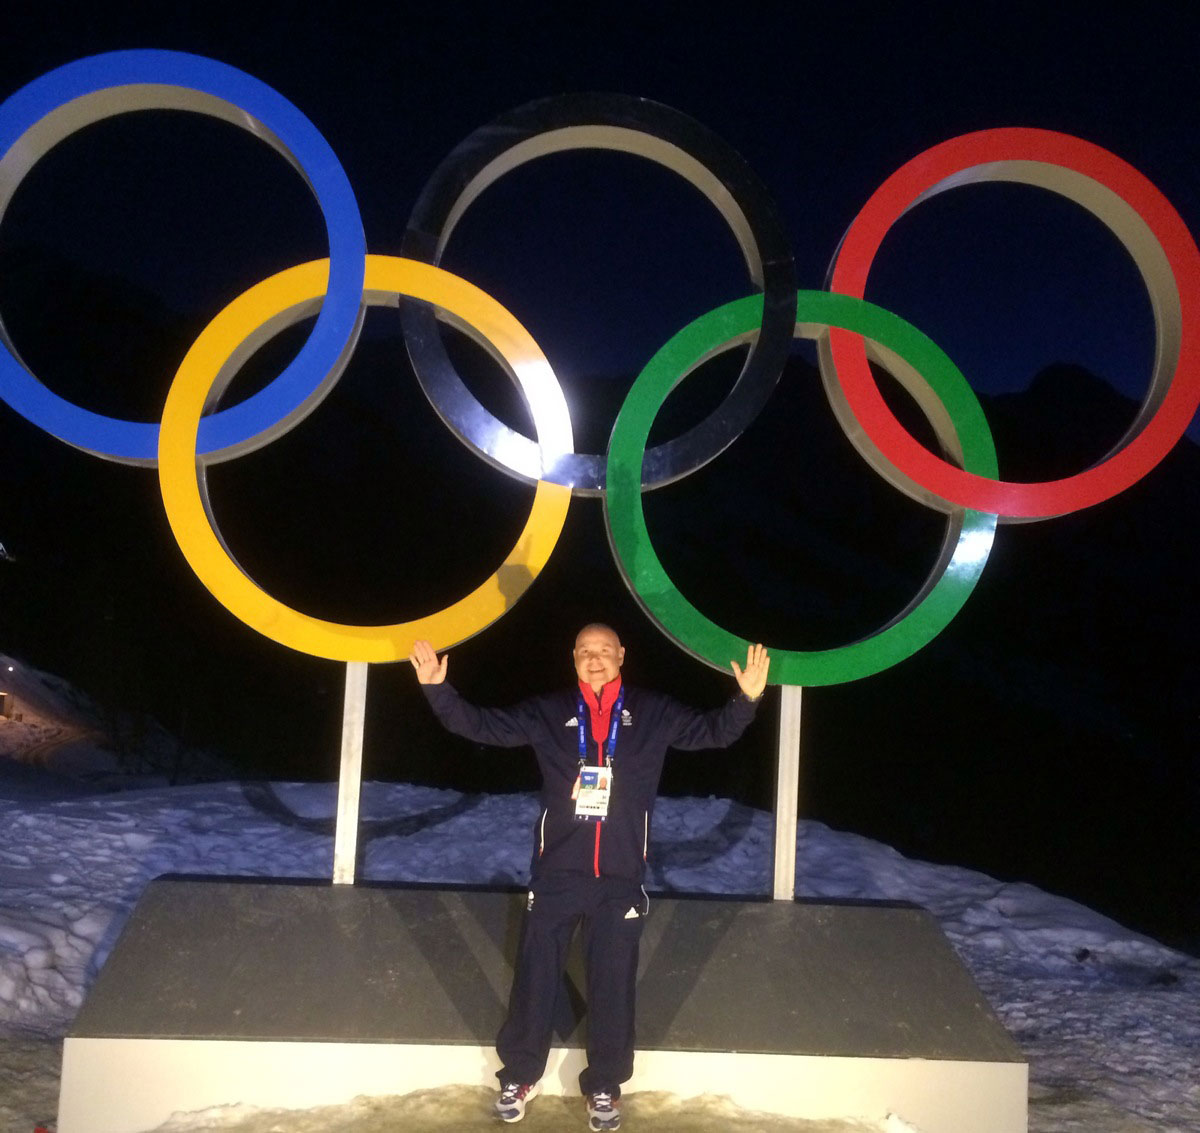 Gary Anderson and the Olympic rings in Sochi.